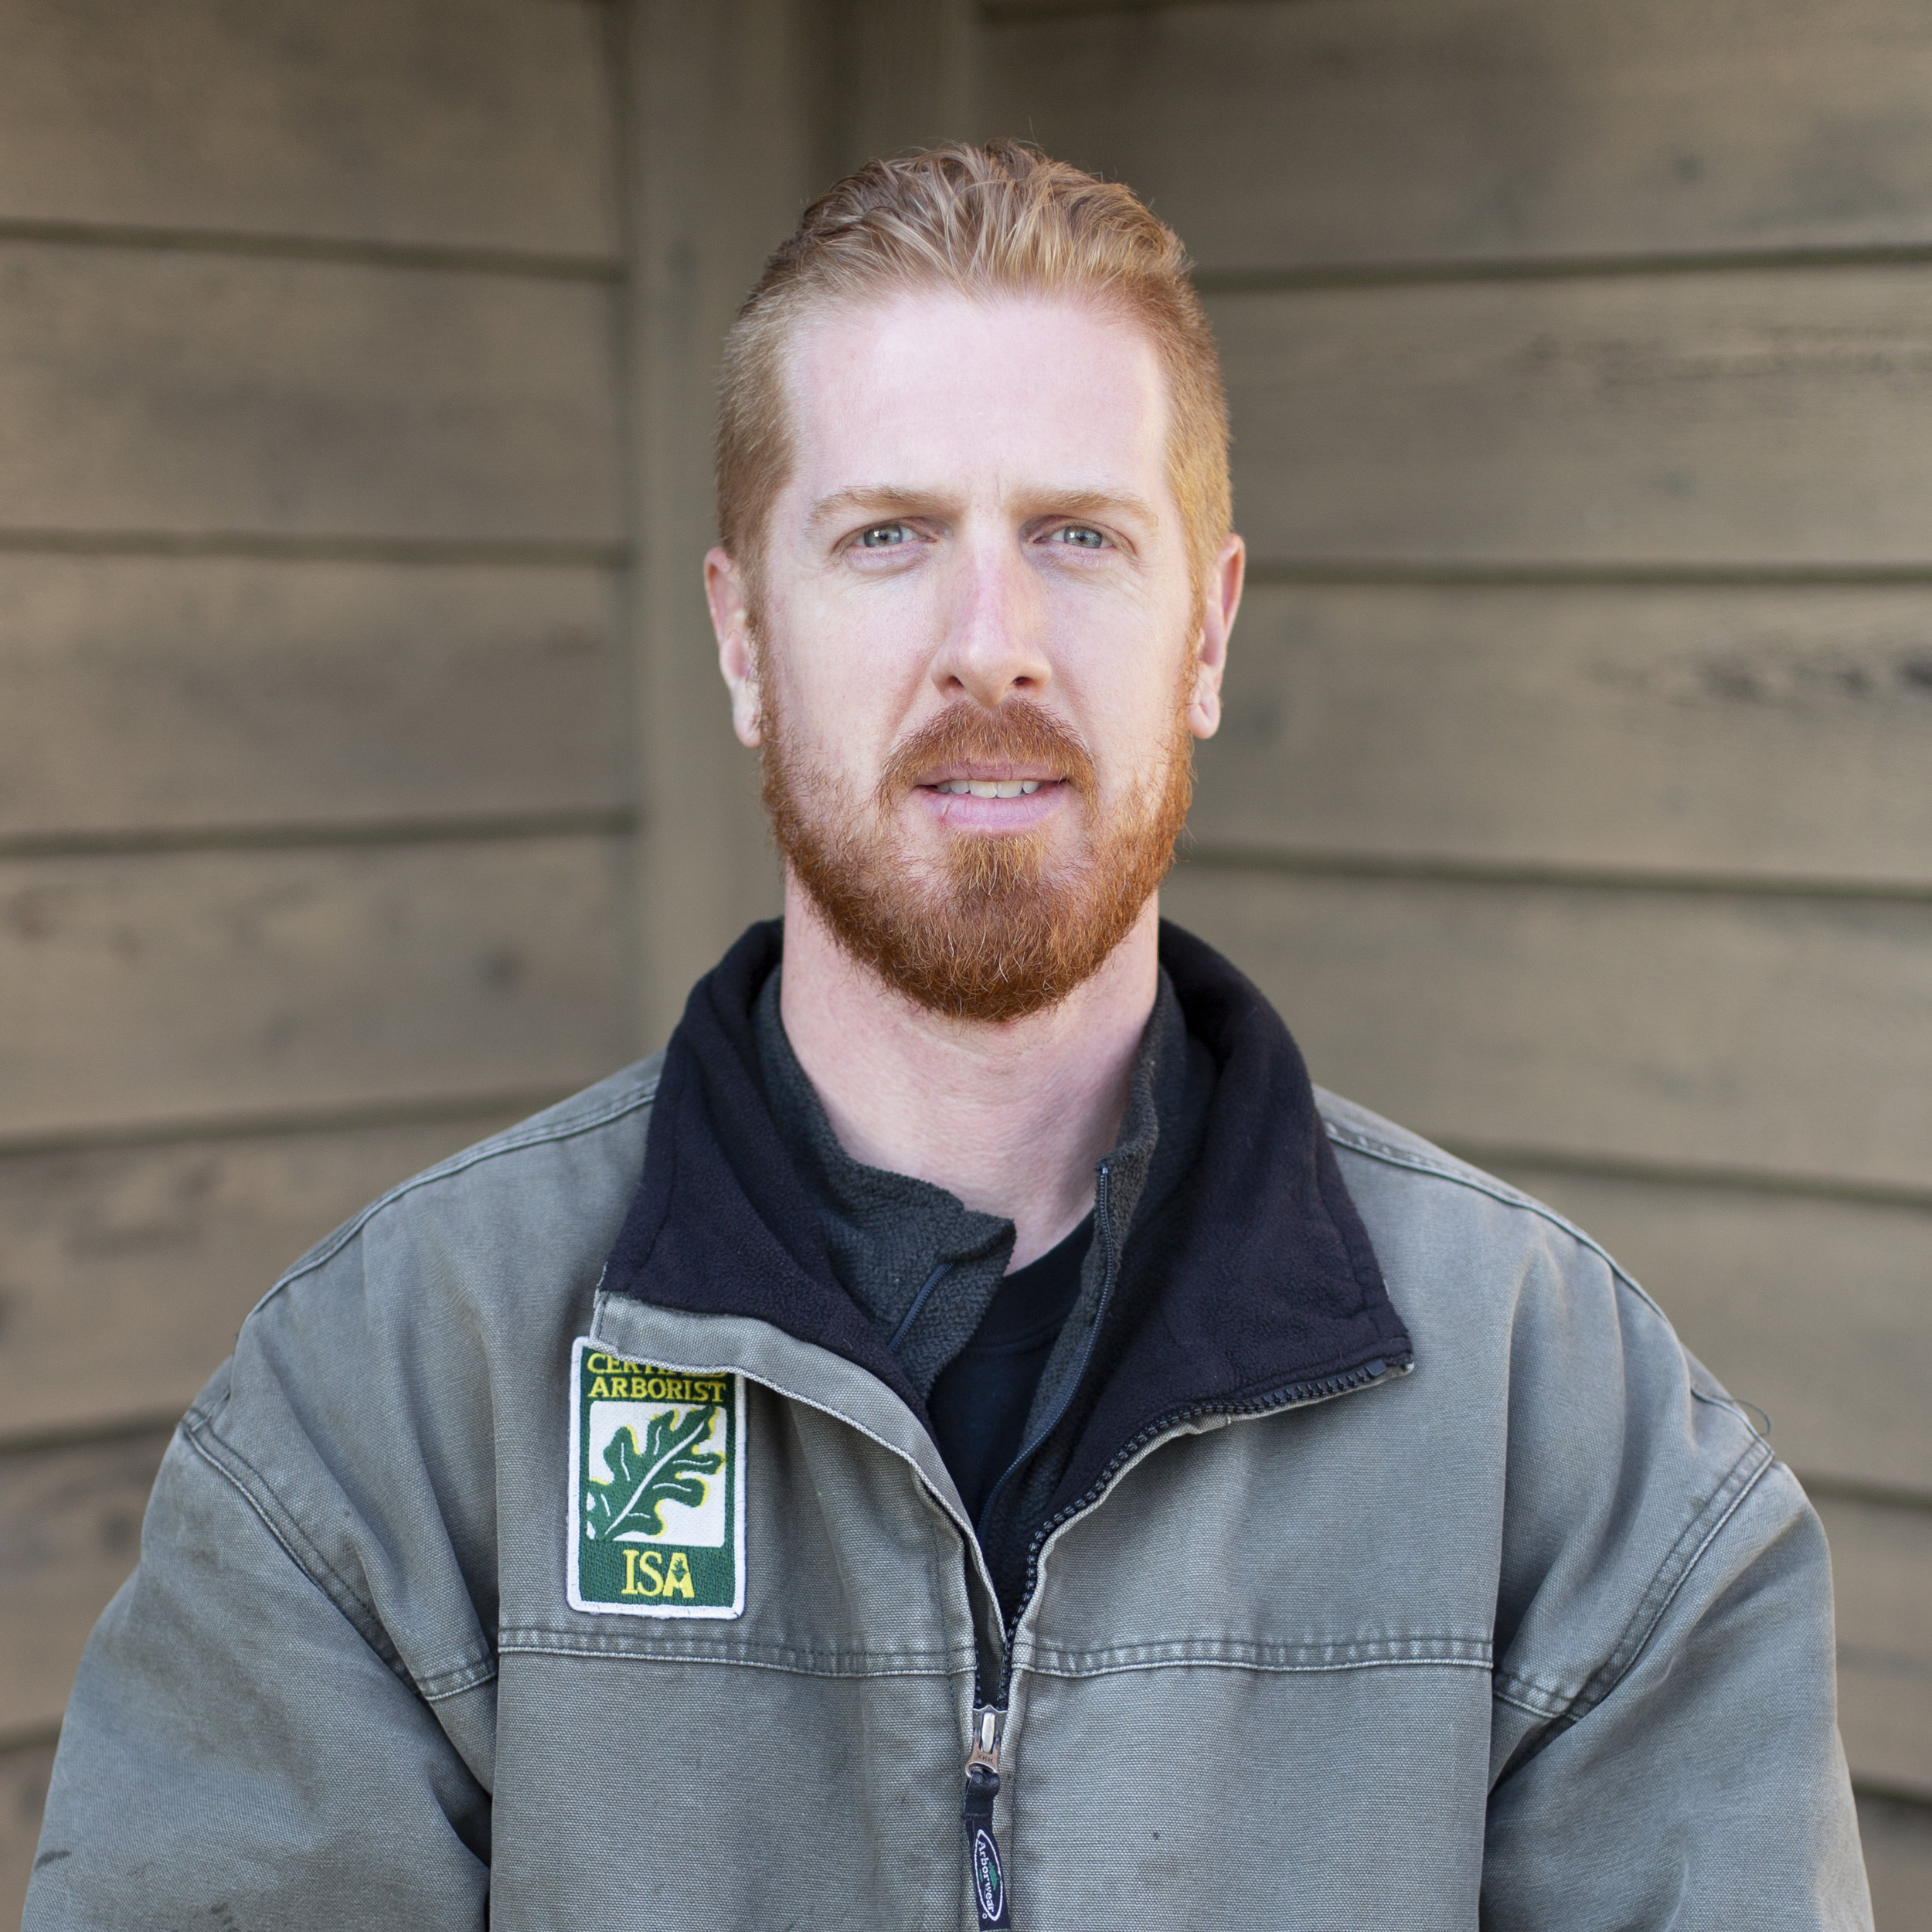 Walter Reins - REGIONAL MANAGERWalter has been an ISA Certified Arborist since 2003. He graduated from Montgomery College in Maryland with a degree in Landscape Horticulture, and has called Columbus, OH his home for nearly 20 years. Walter appreciates trees for their majesty and the critical role they play in our world.▶ ISA Certified Arborist® OH-5113A▶ EHAP Certified▶ CPR & First Aid▶ Landscape Horticulture, Montgomery College